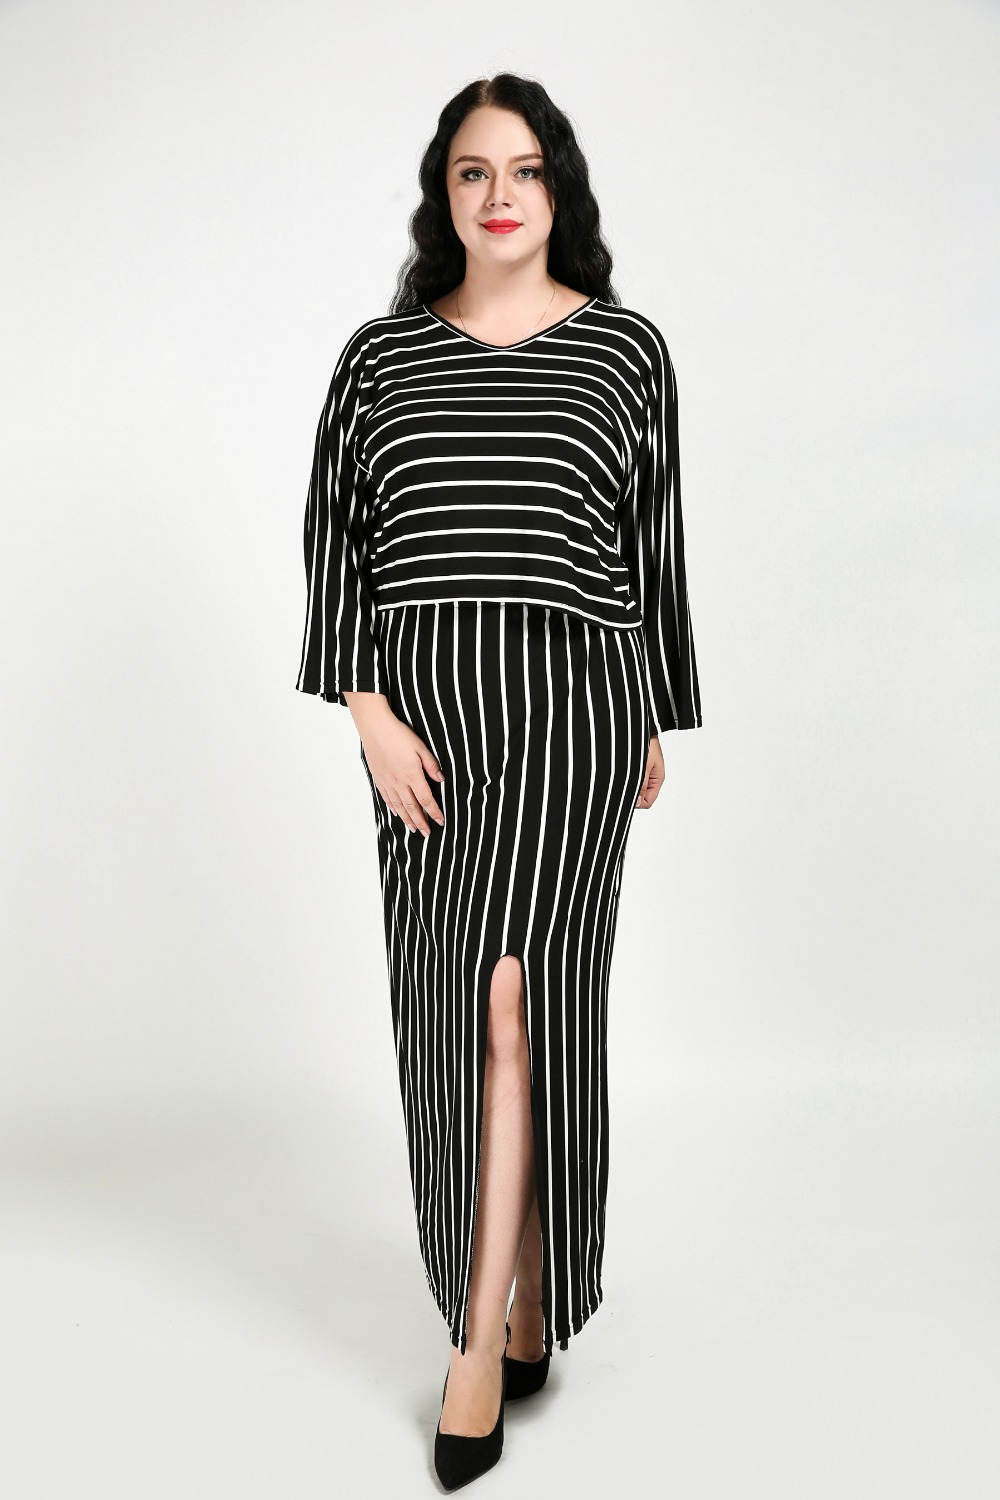 Womens Sexy Plus Size Dress Suits Long Sleeve Loose Striped Suits Slits Design Spring Autumn Dress Suits Black And White 7XL